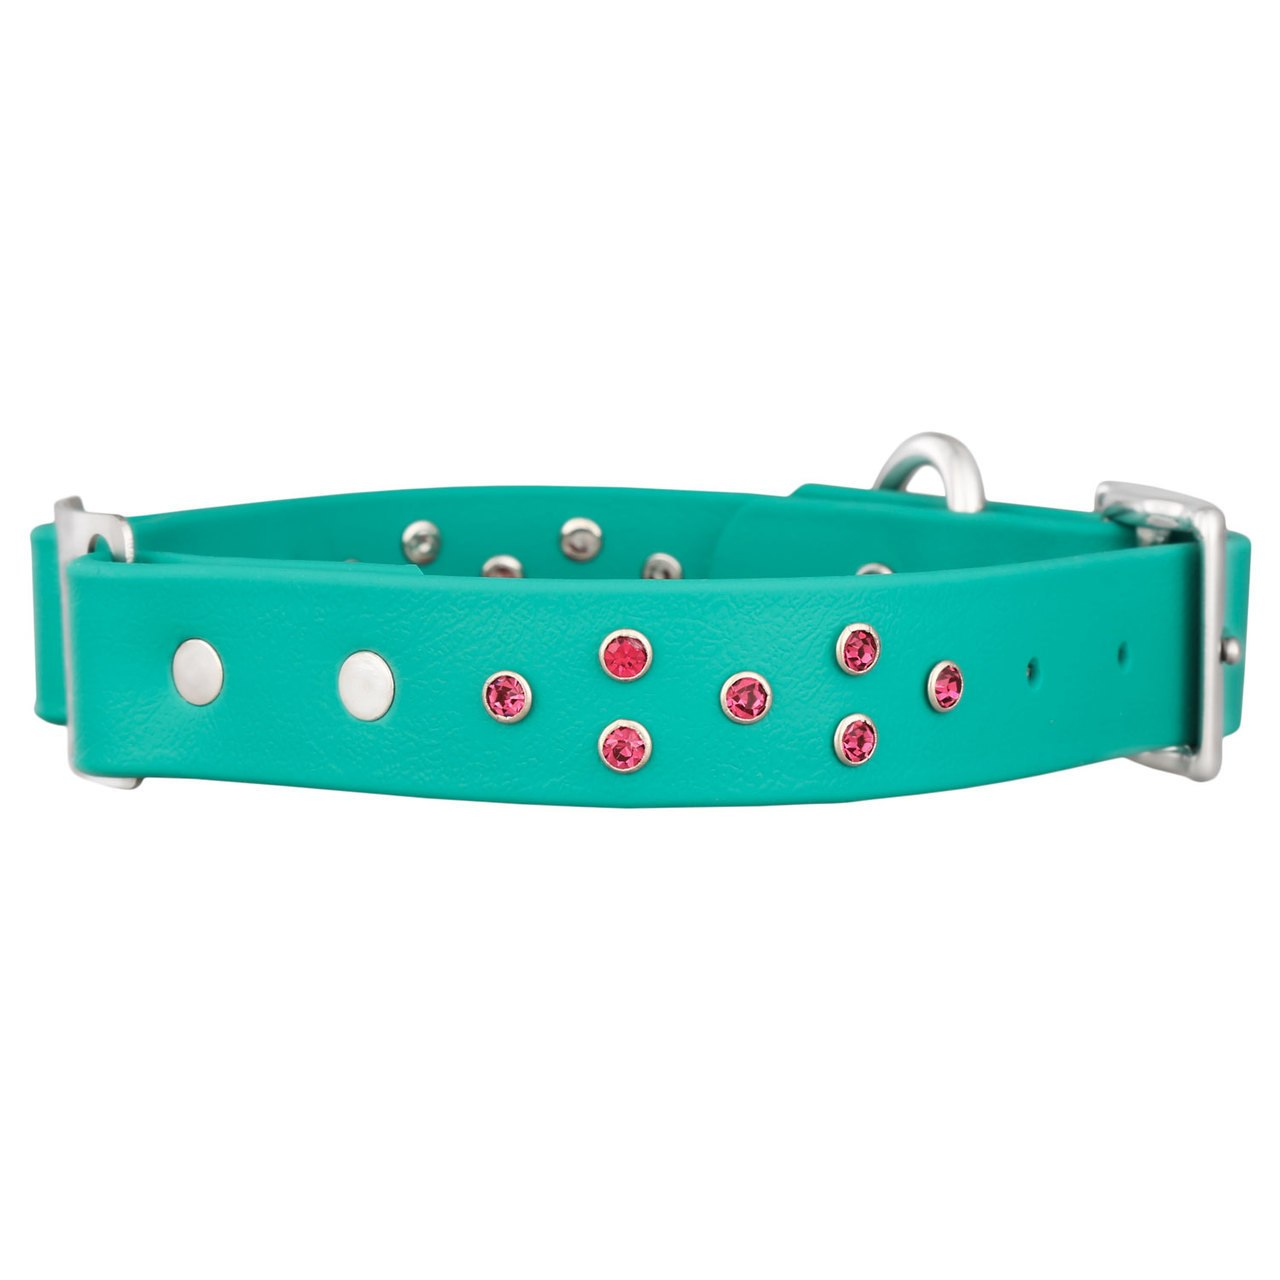 Personalized Jewel Series Soft Grip ScruffTag Dog Collar Teal with Pink Diamond